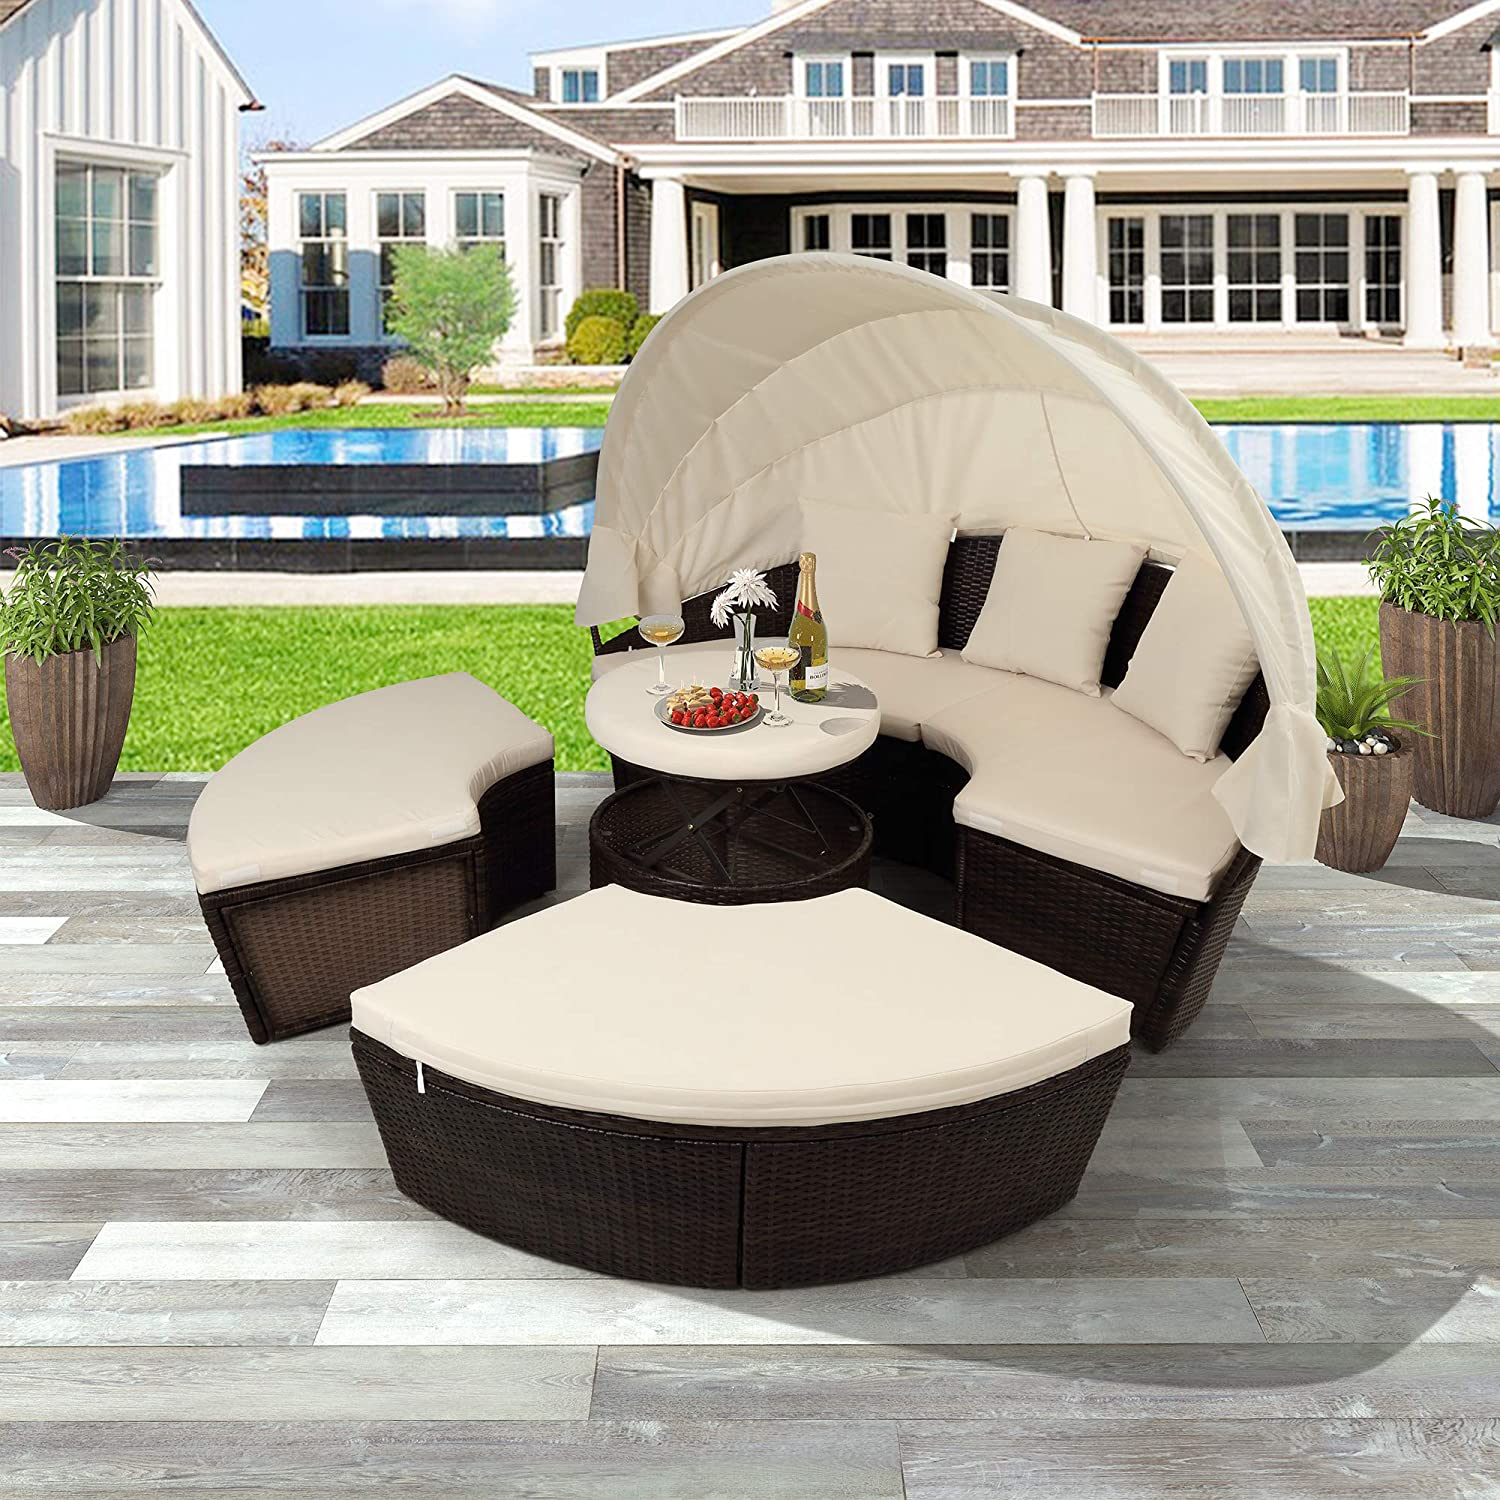 LZ LEISURE ZONE Outdoor Patio Furniture Sets, All-Weather PE Rattan Wicker Round Daybed Sectional Sofa Set Conversation Sets with Retractable Canopy and Coffee Table Beige